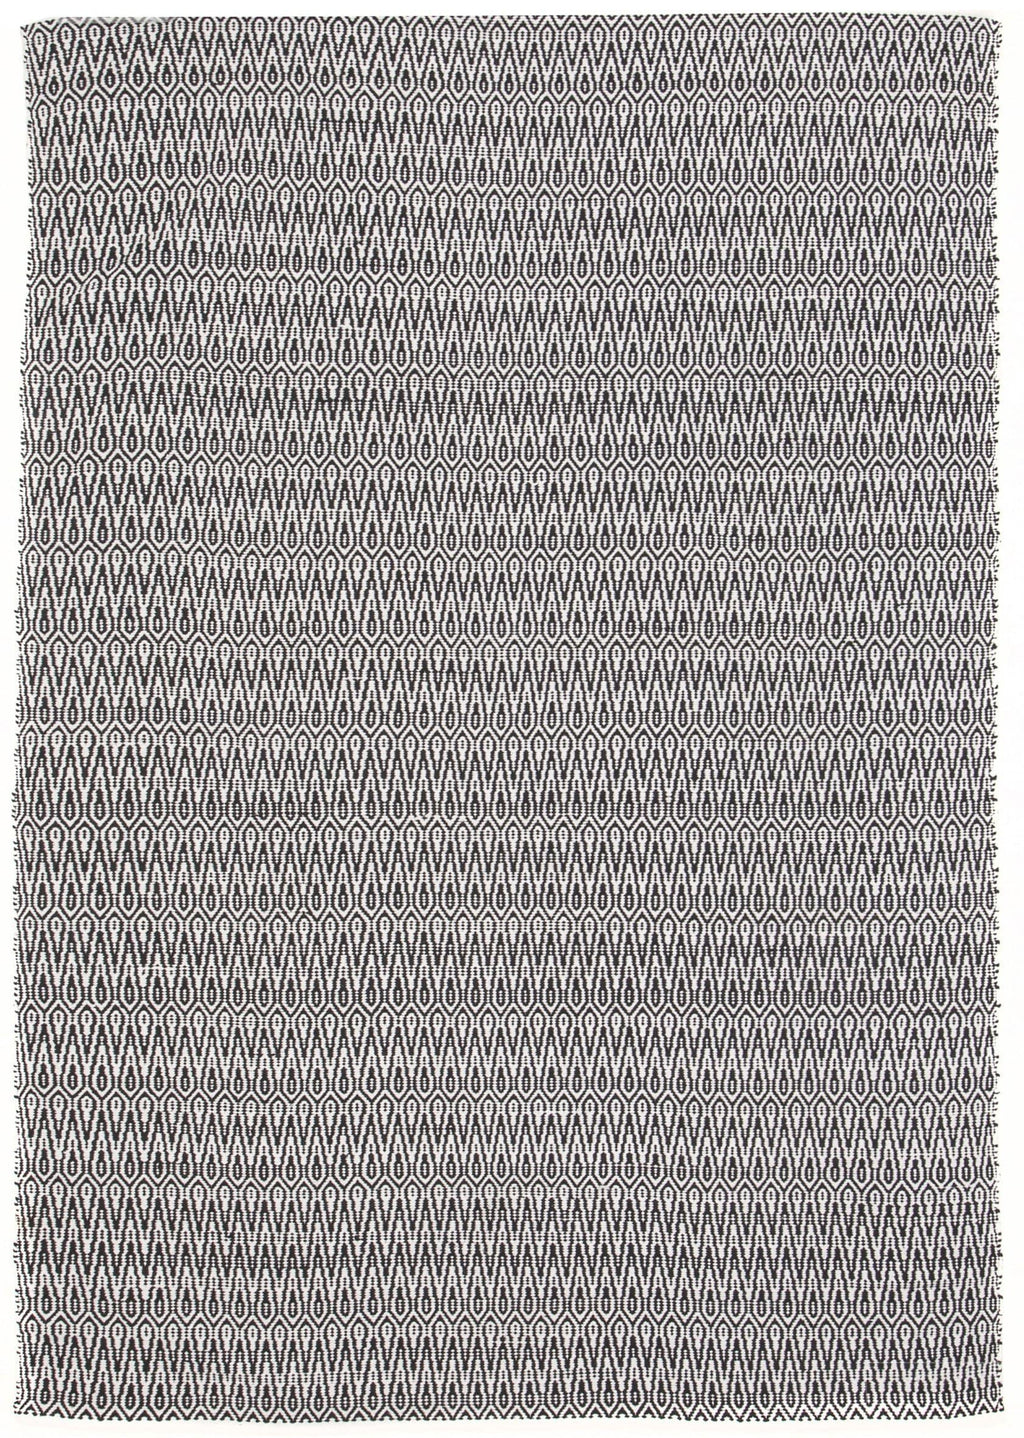 Edmonton Black & White Handloomed Rug